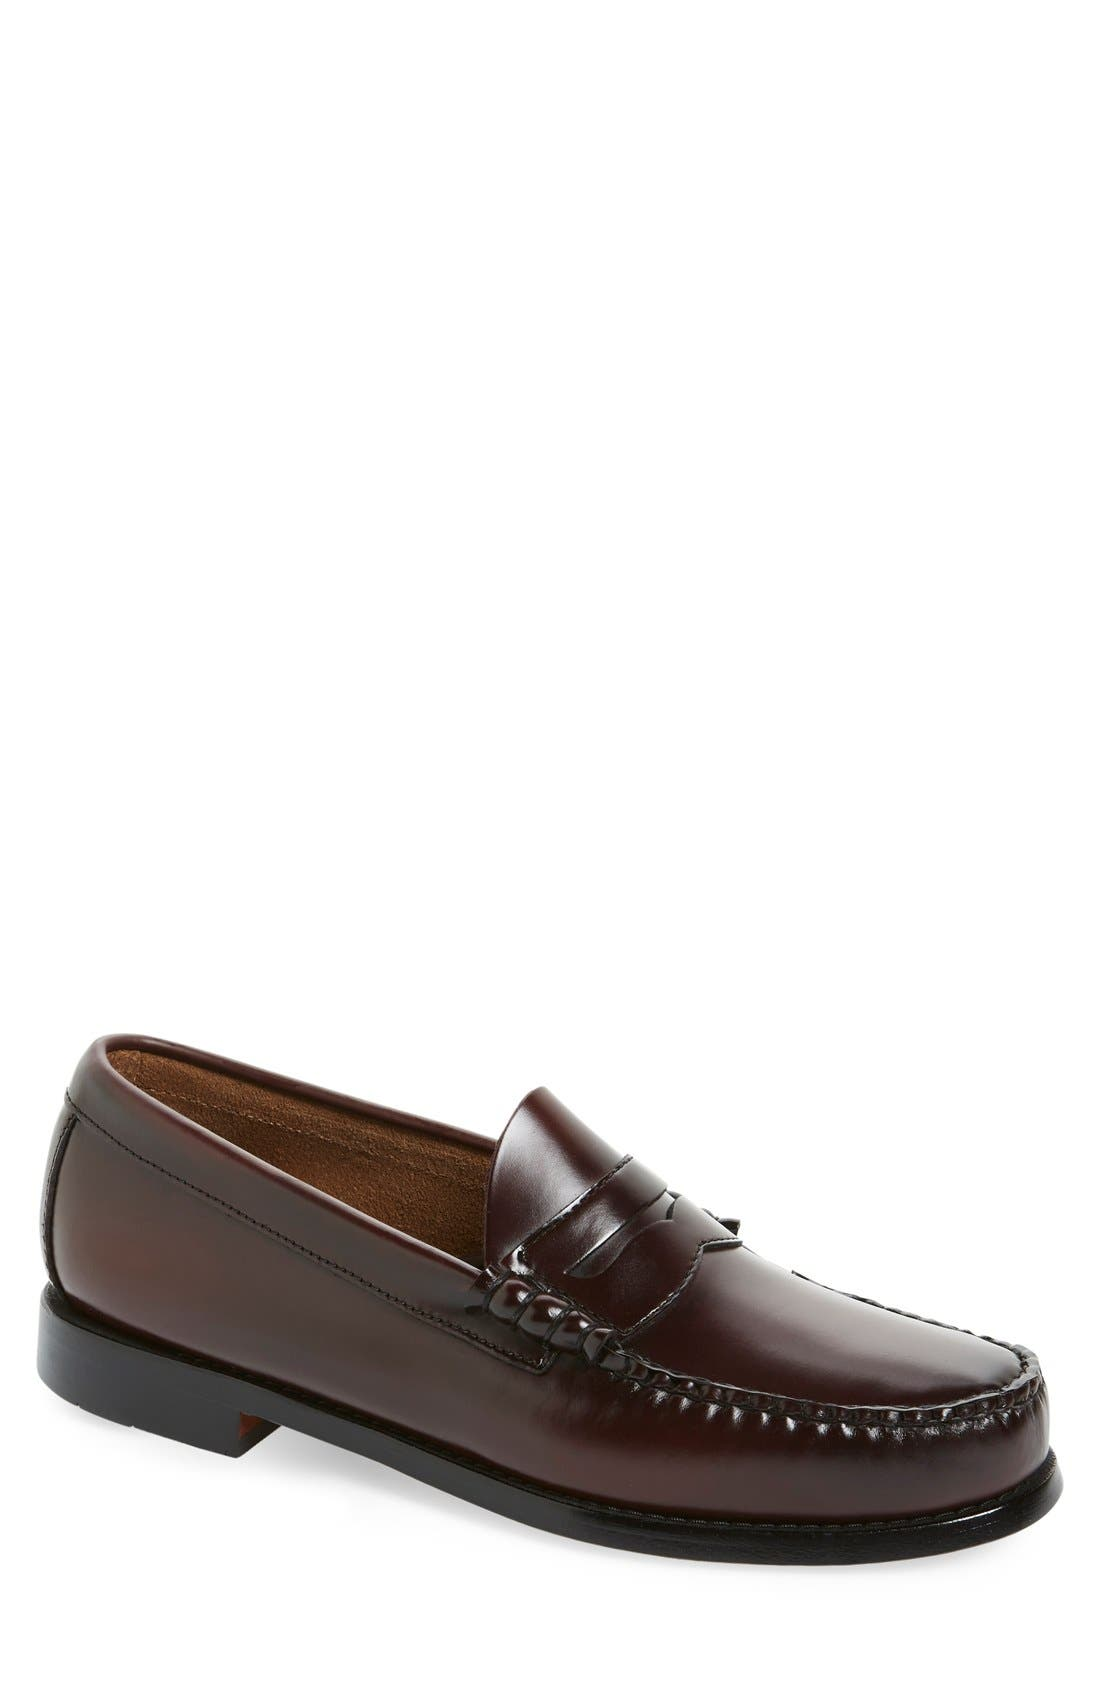 'Larson - Weejuns' Penny Loafer,                             Main thumbnail 1, color,                             603